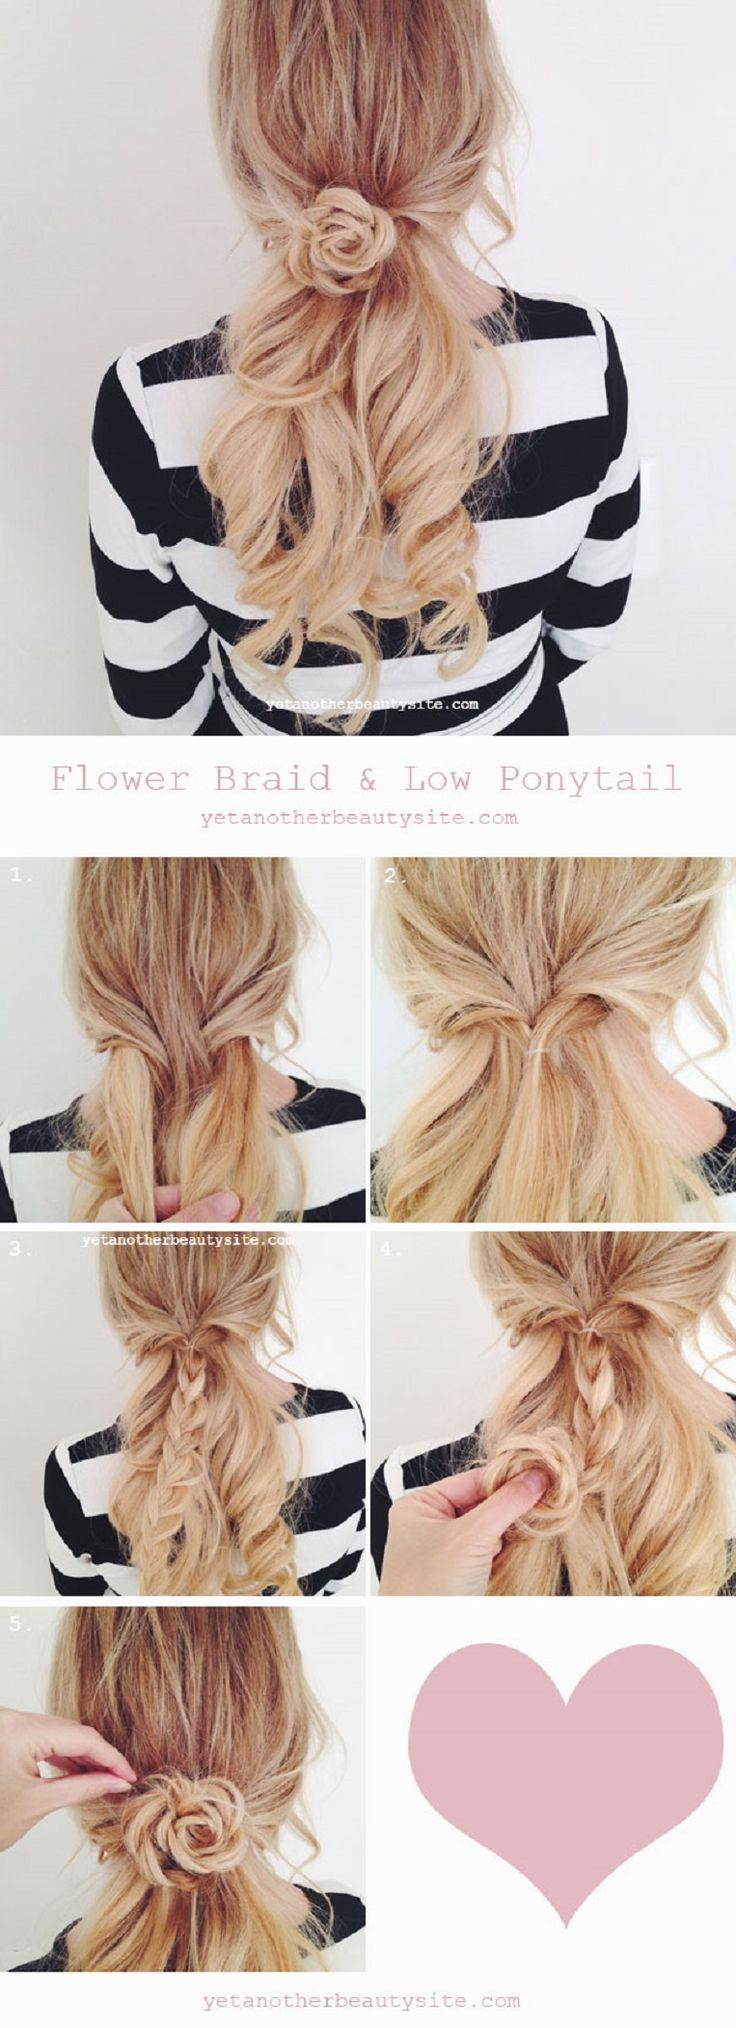 ring stores Pretty Low Ponytail  amp  Flower Braid   16 Heatless DIY Hairstyles To Get You Through The Summer   GleamItUp